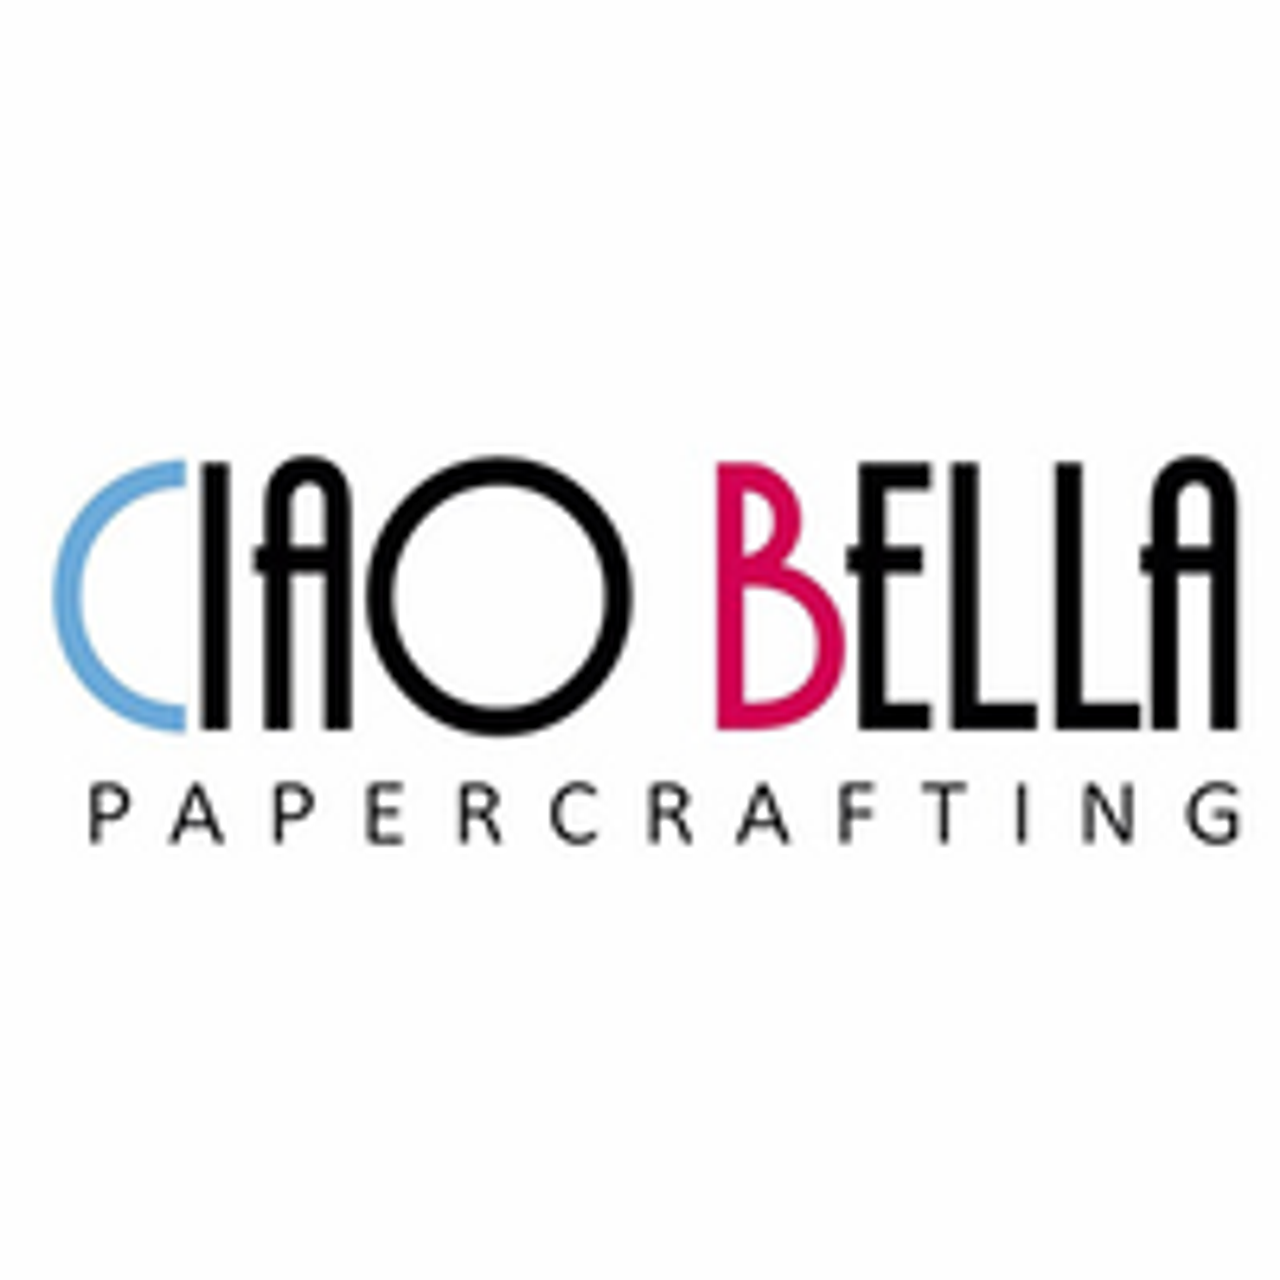 Ciao Bella Papercrafting